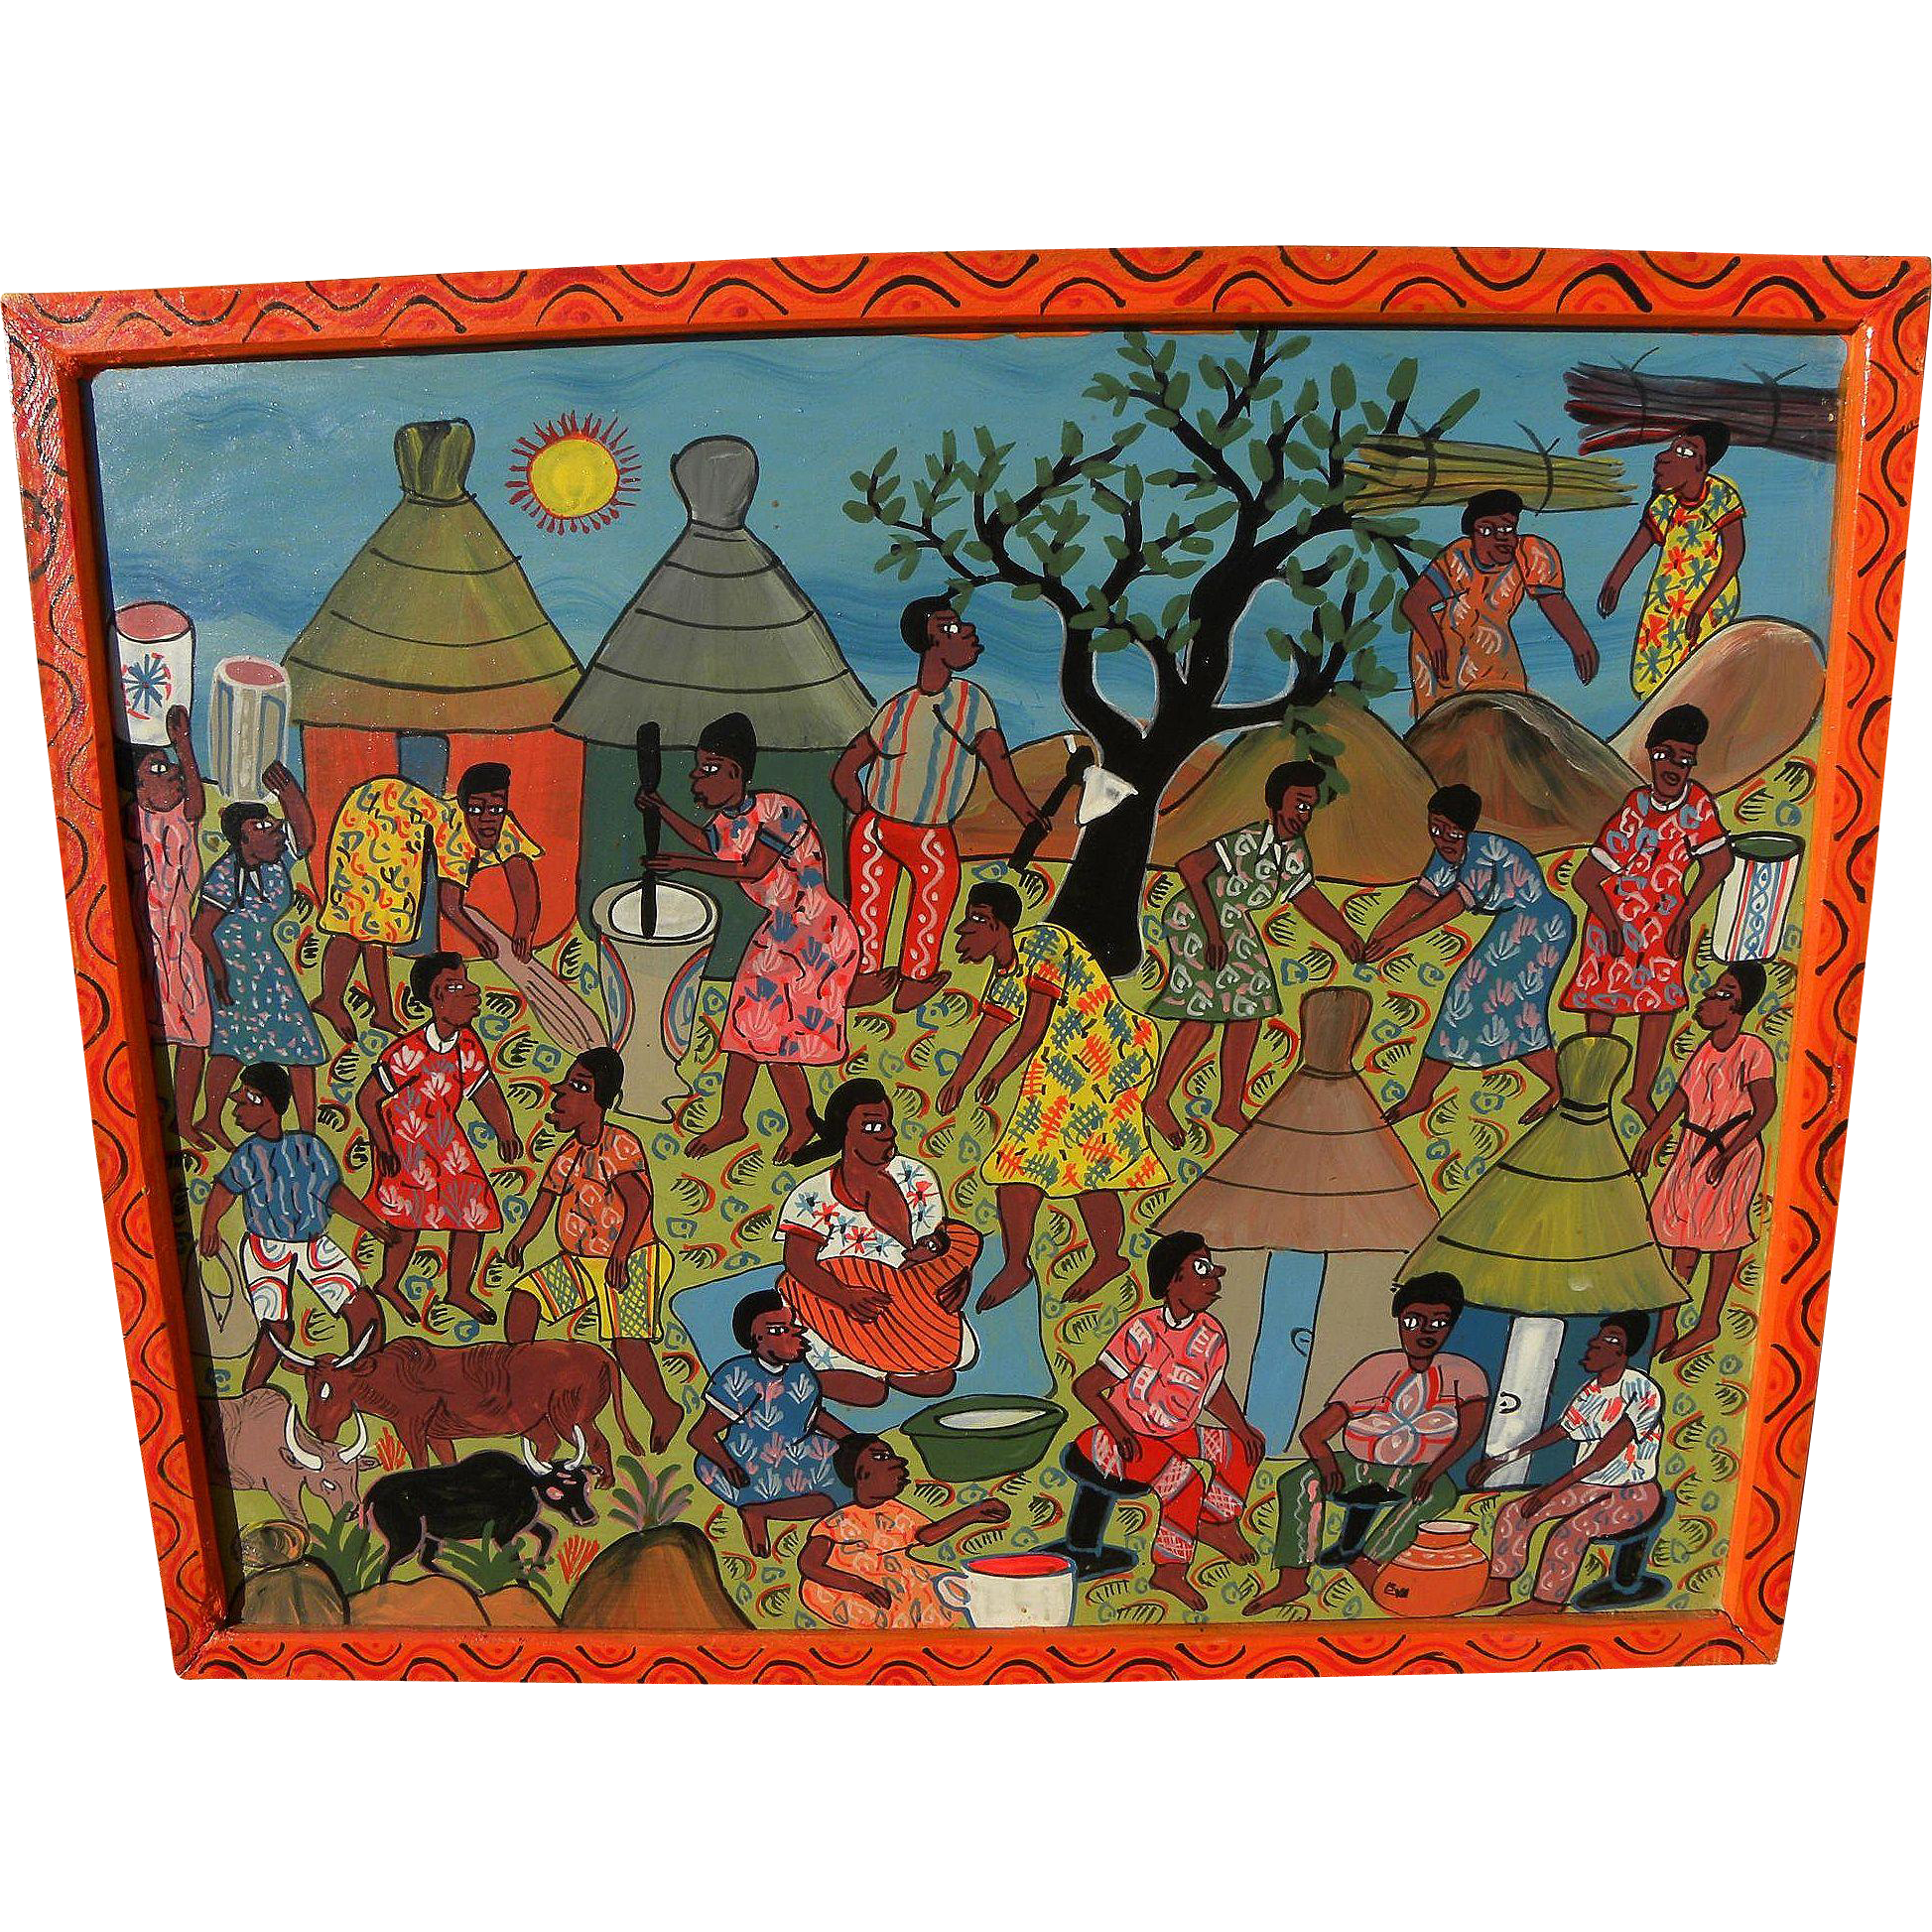 Colorful African contemporary art naive painting of villagers in daily routines